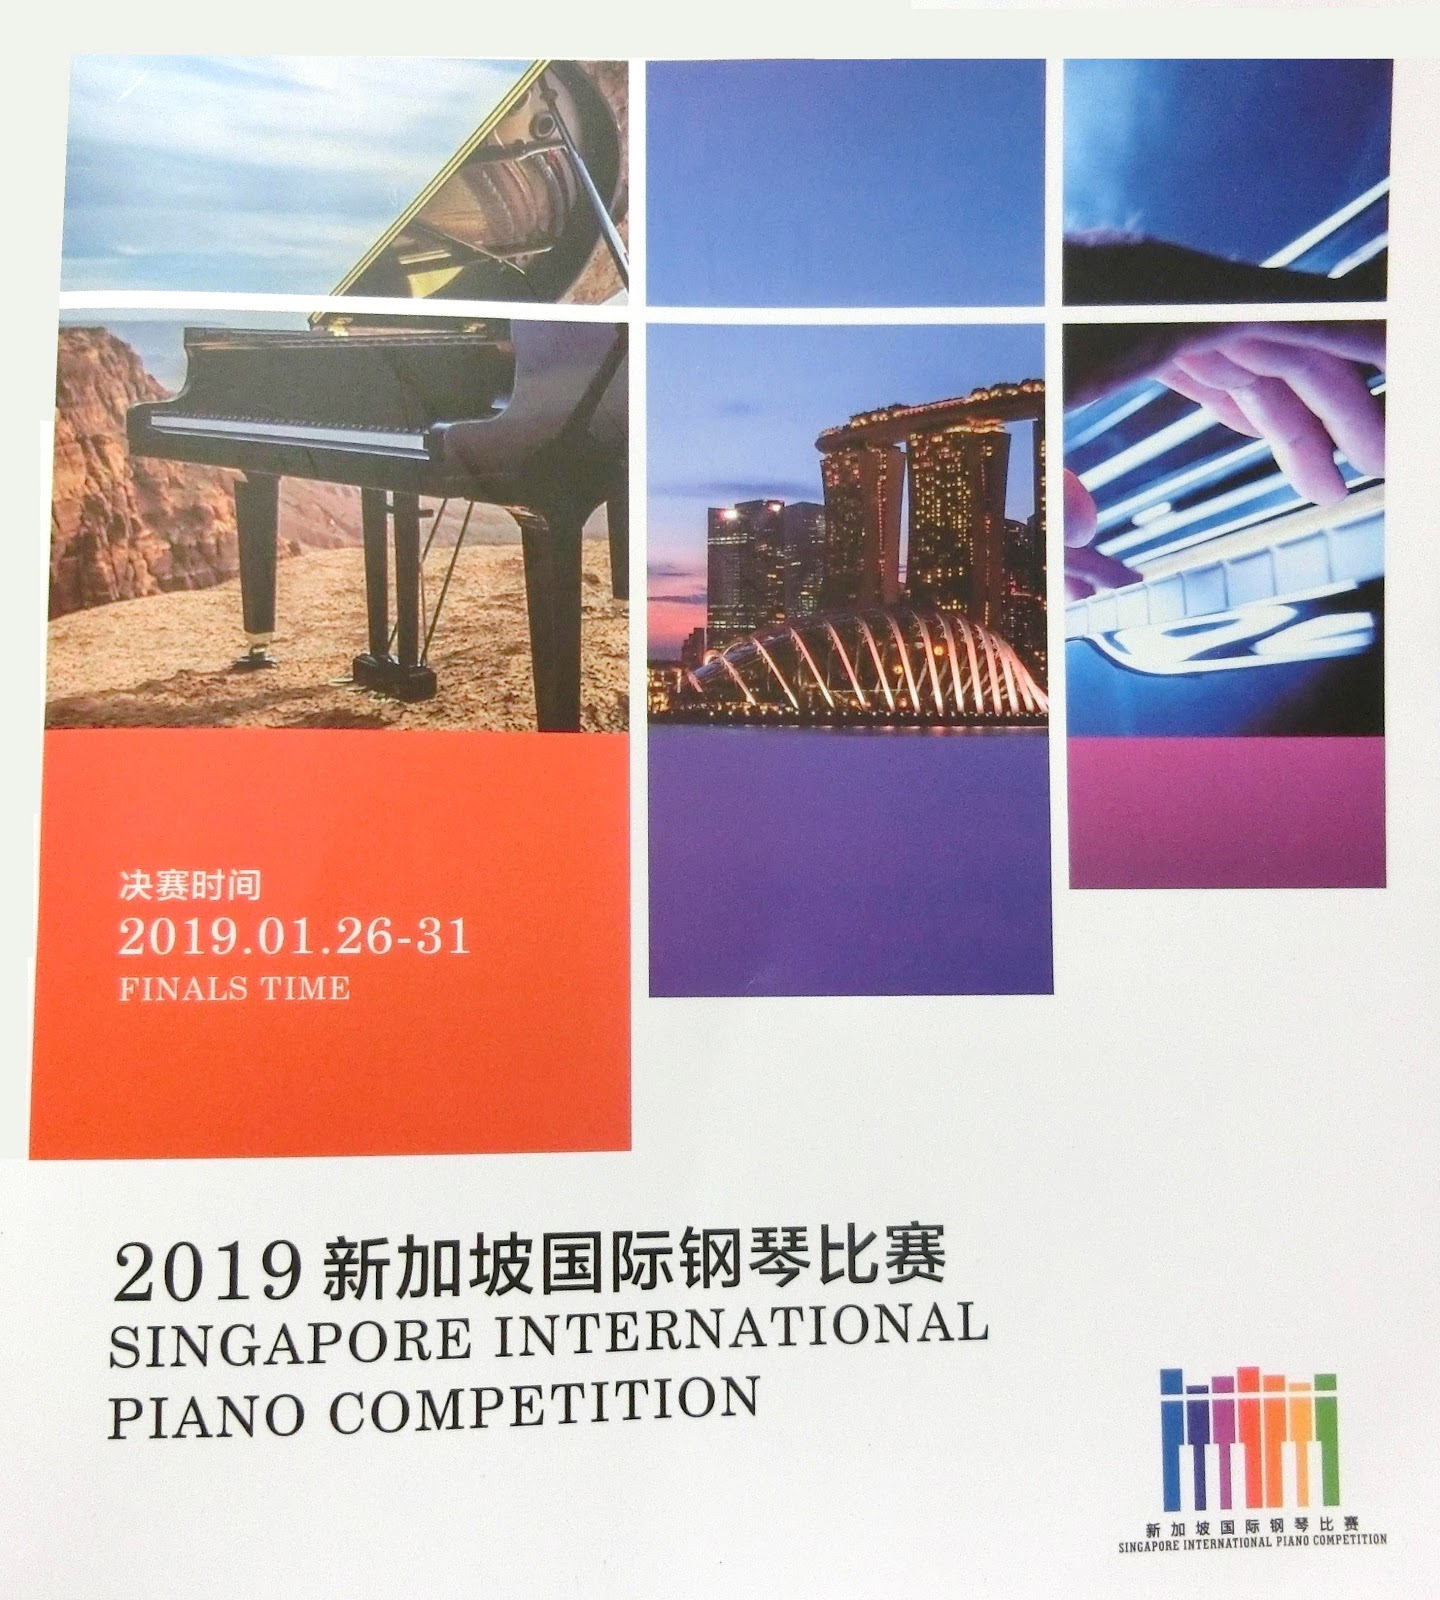 pianomania: SINGAPORE INTERNATIONAL PIANO COMPETITION 2019